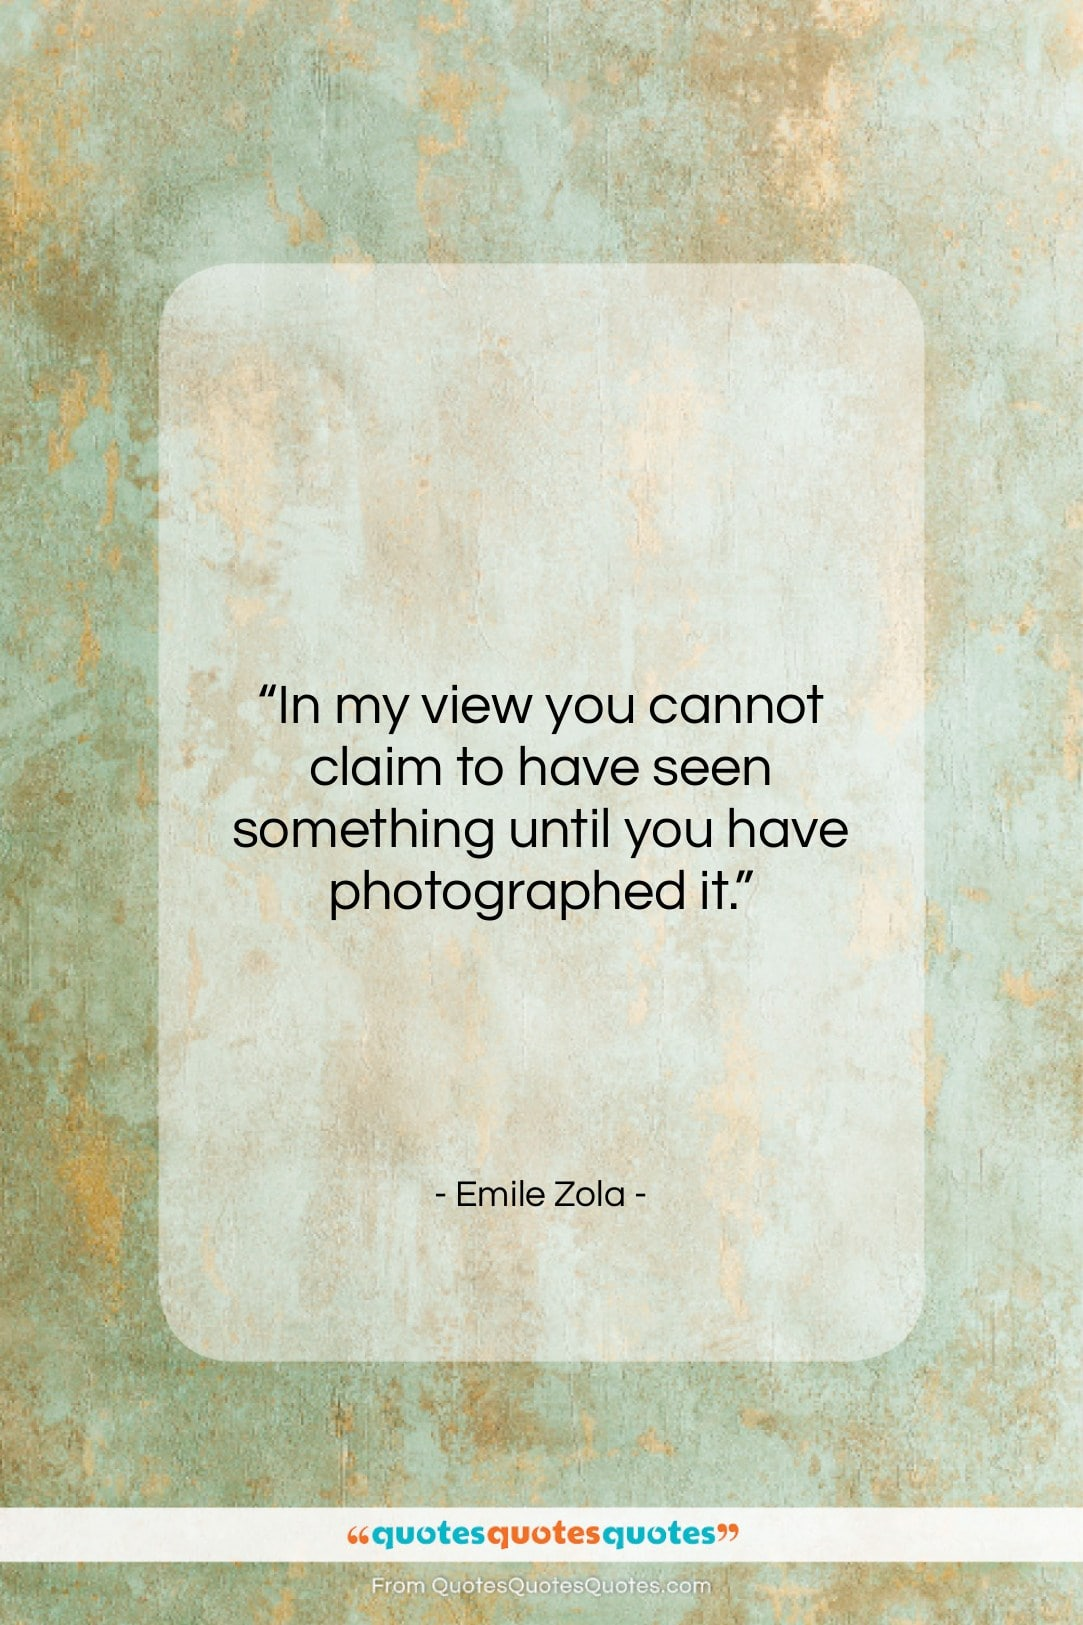 """Emile Zola quote: """"In my view you cannot claim to…""""- at QuotesQuotesQuotes.com"""